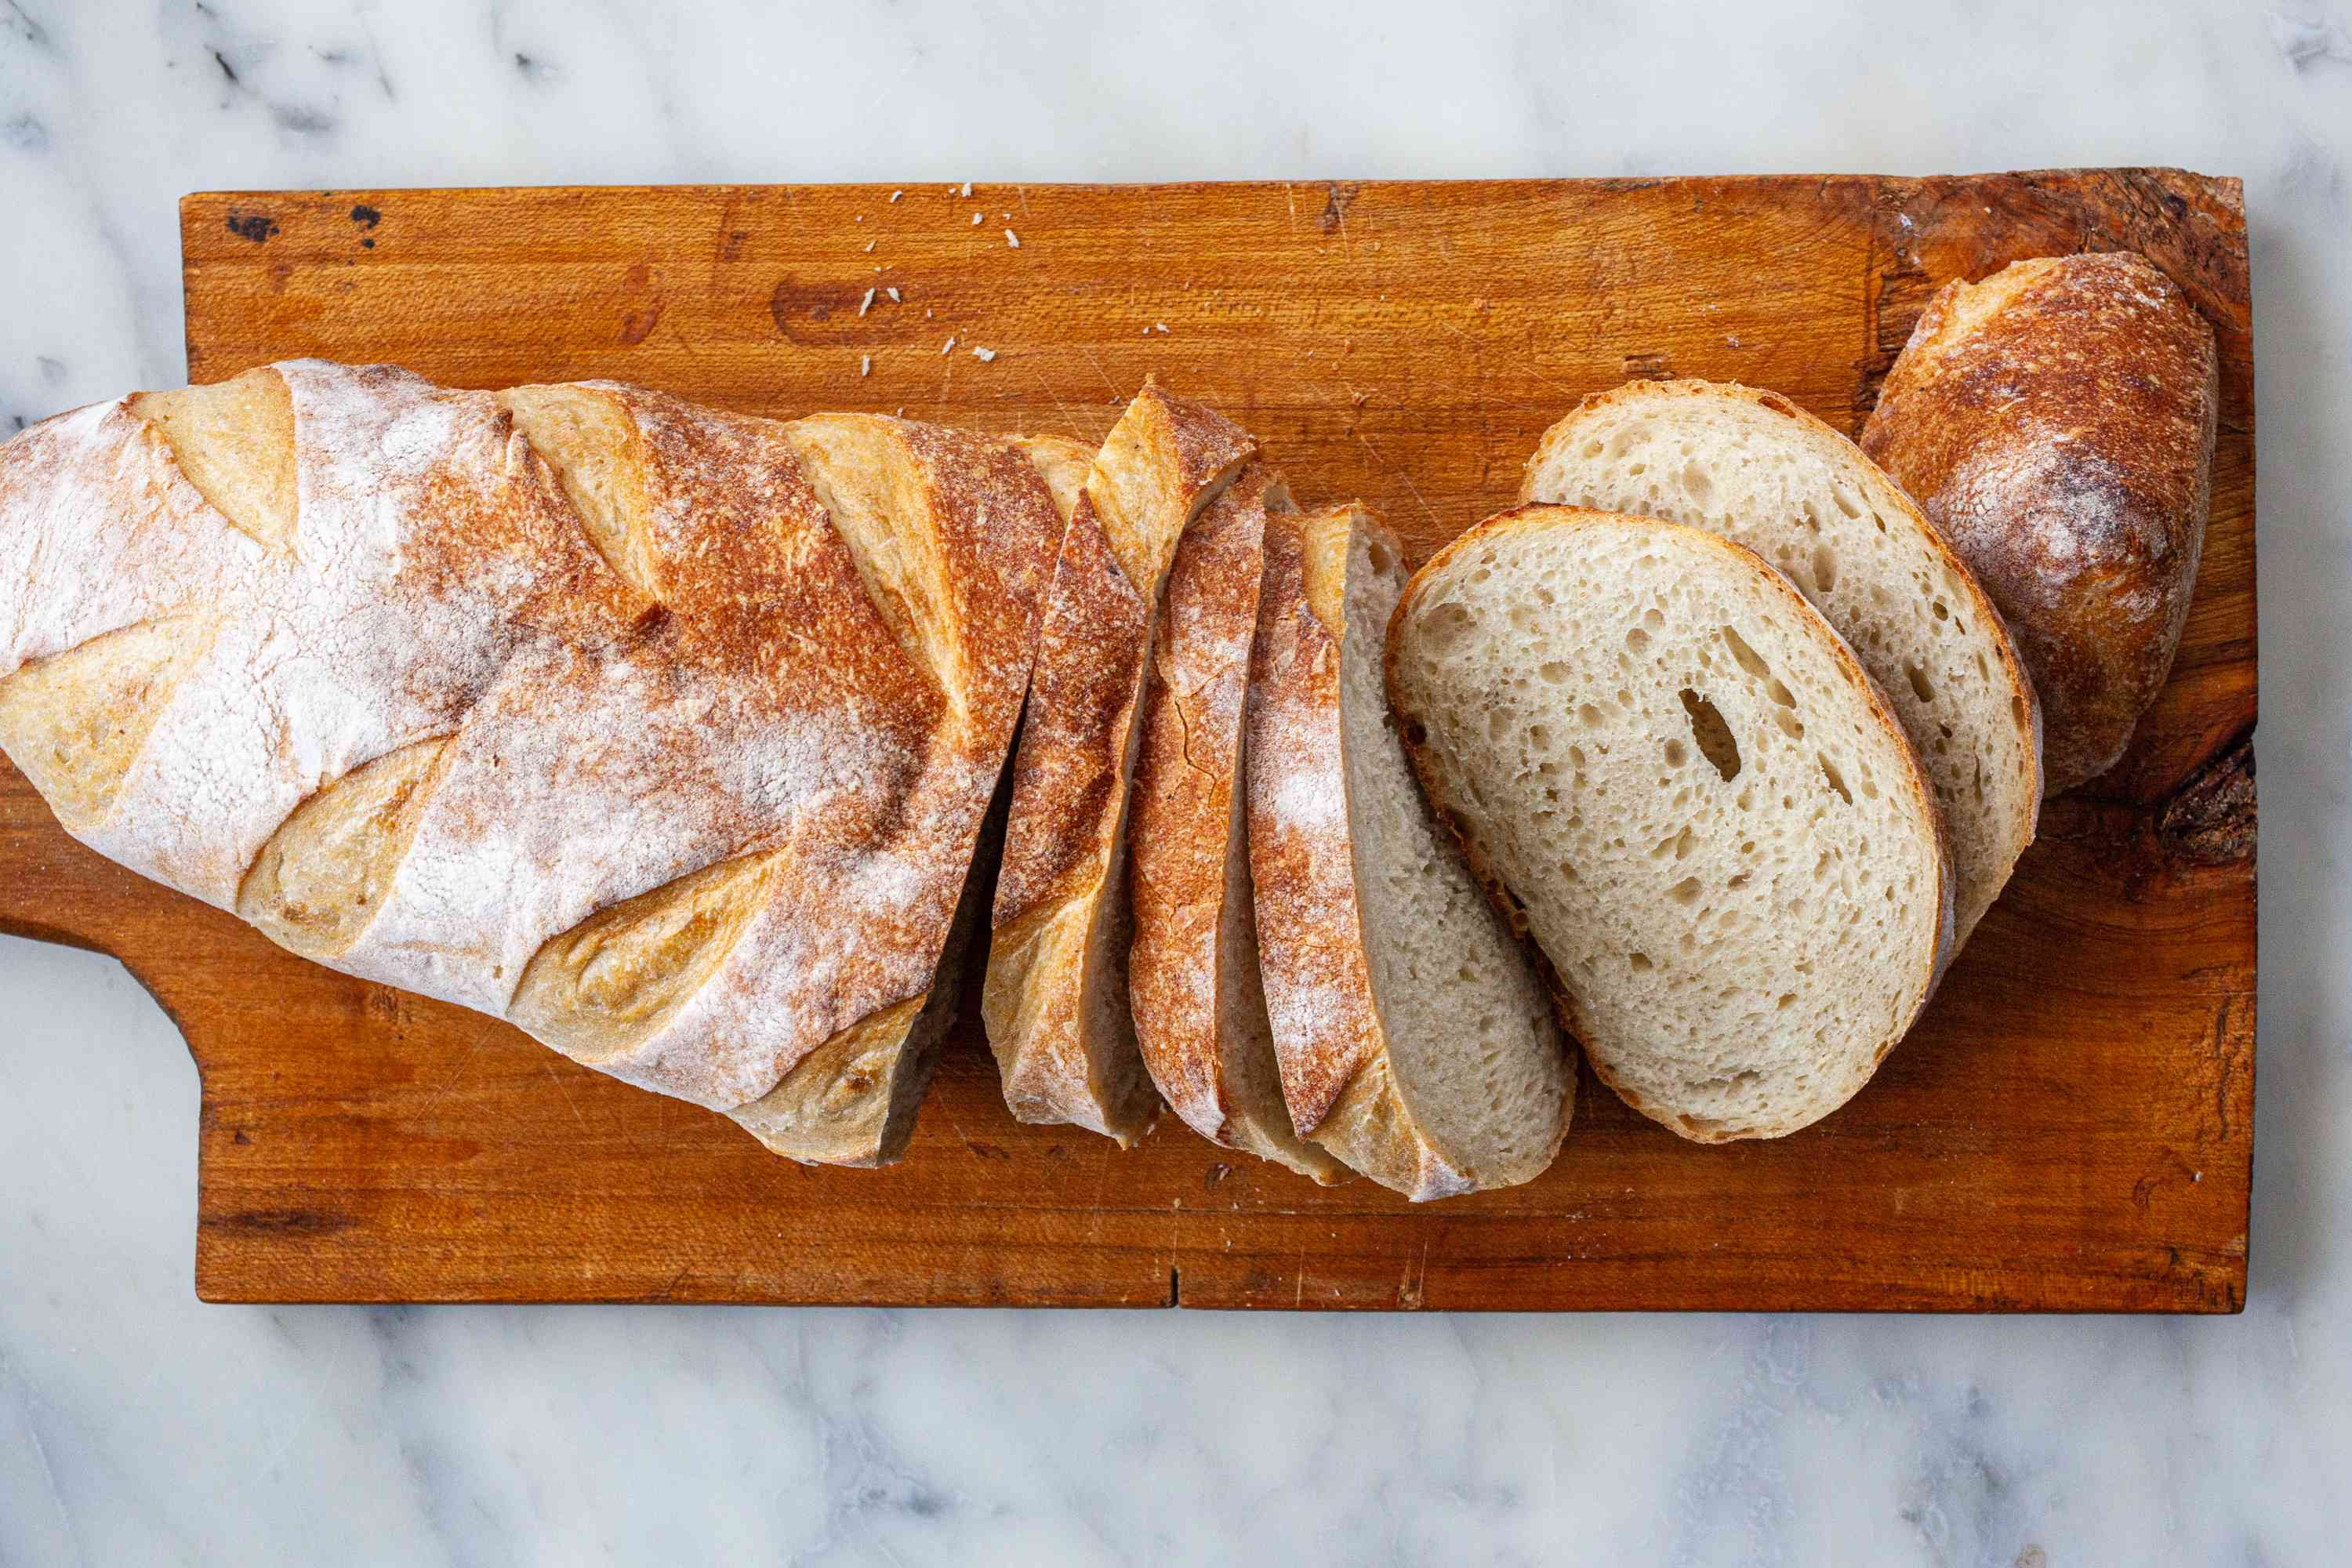 Sliced bread on a cutting board to make Spanish Style Migas.